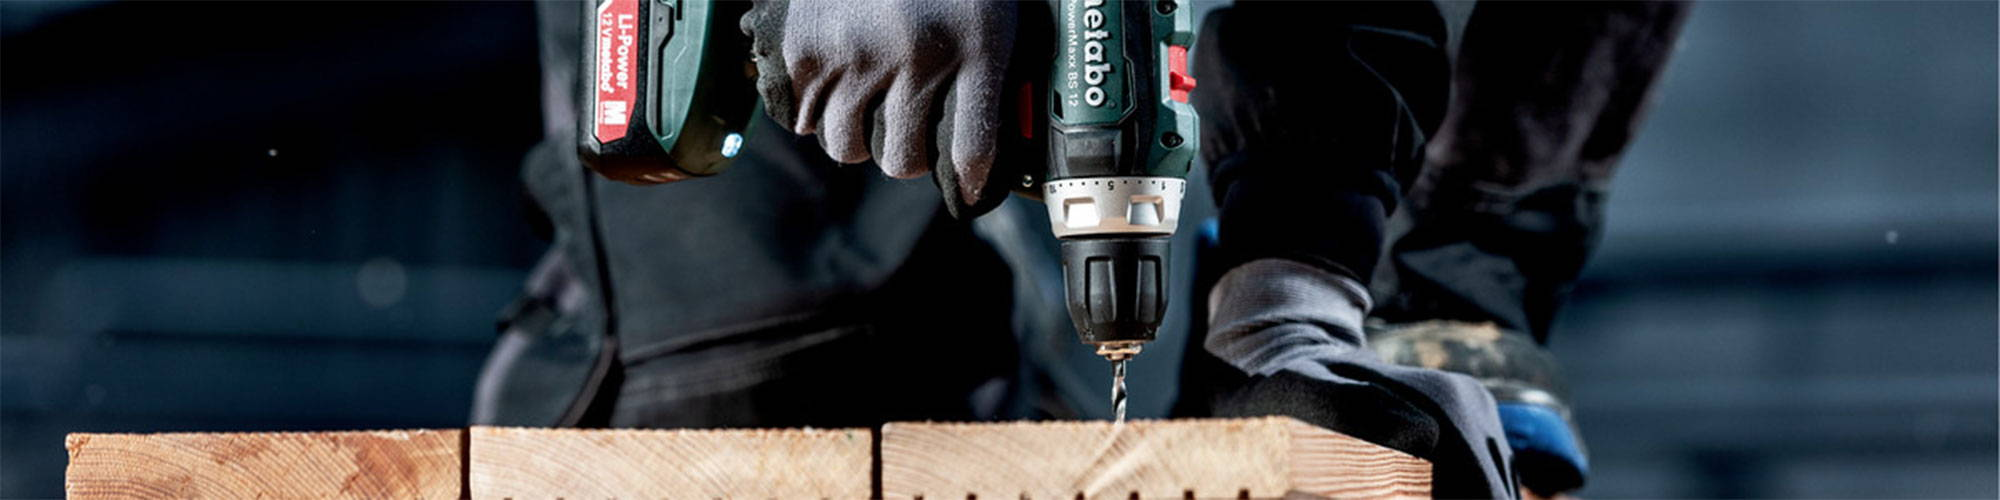 what is a drill driver used for